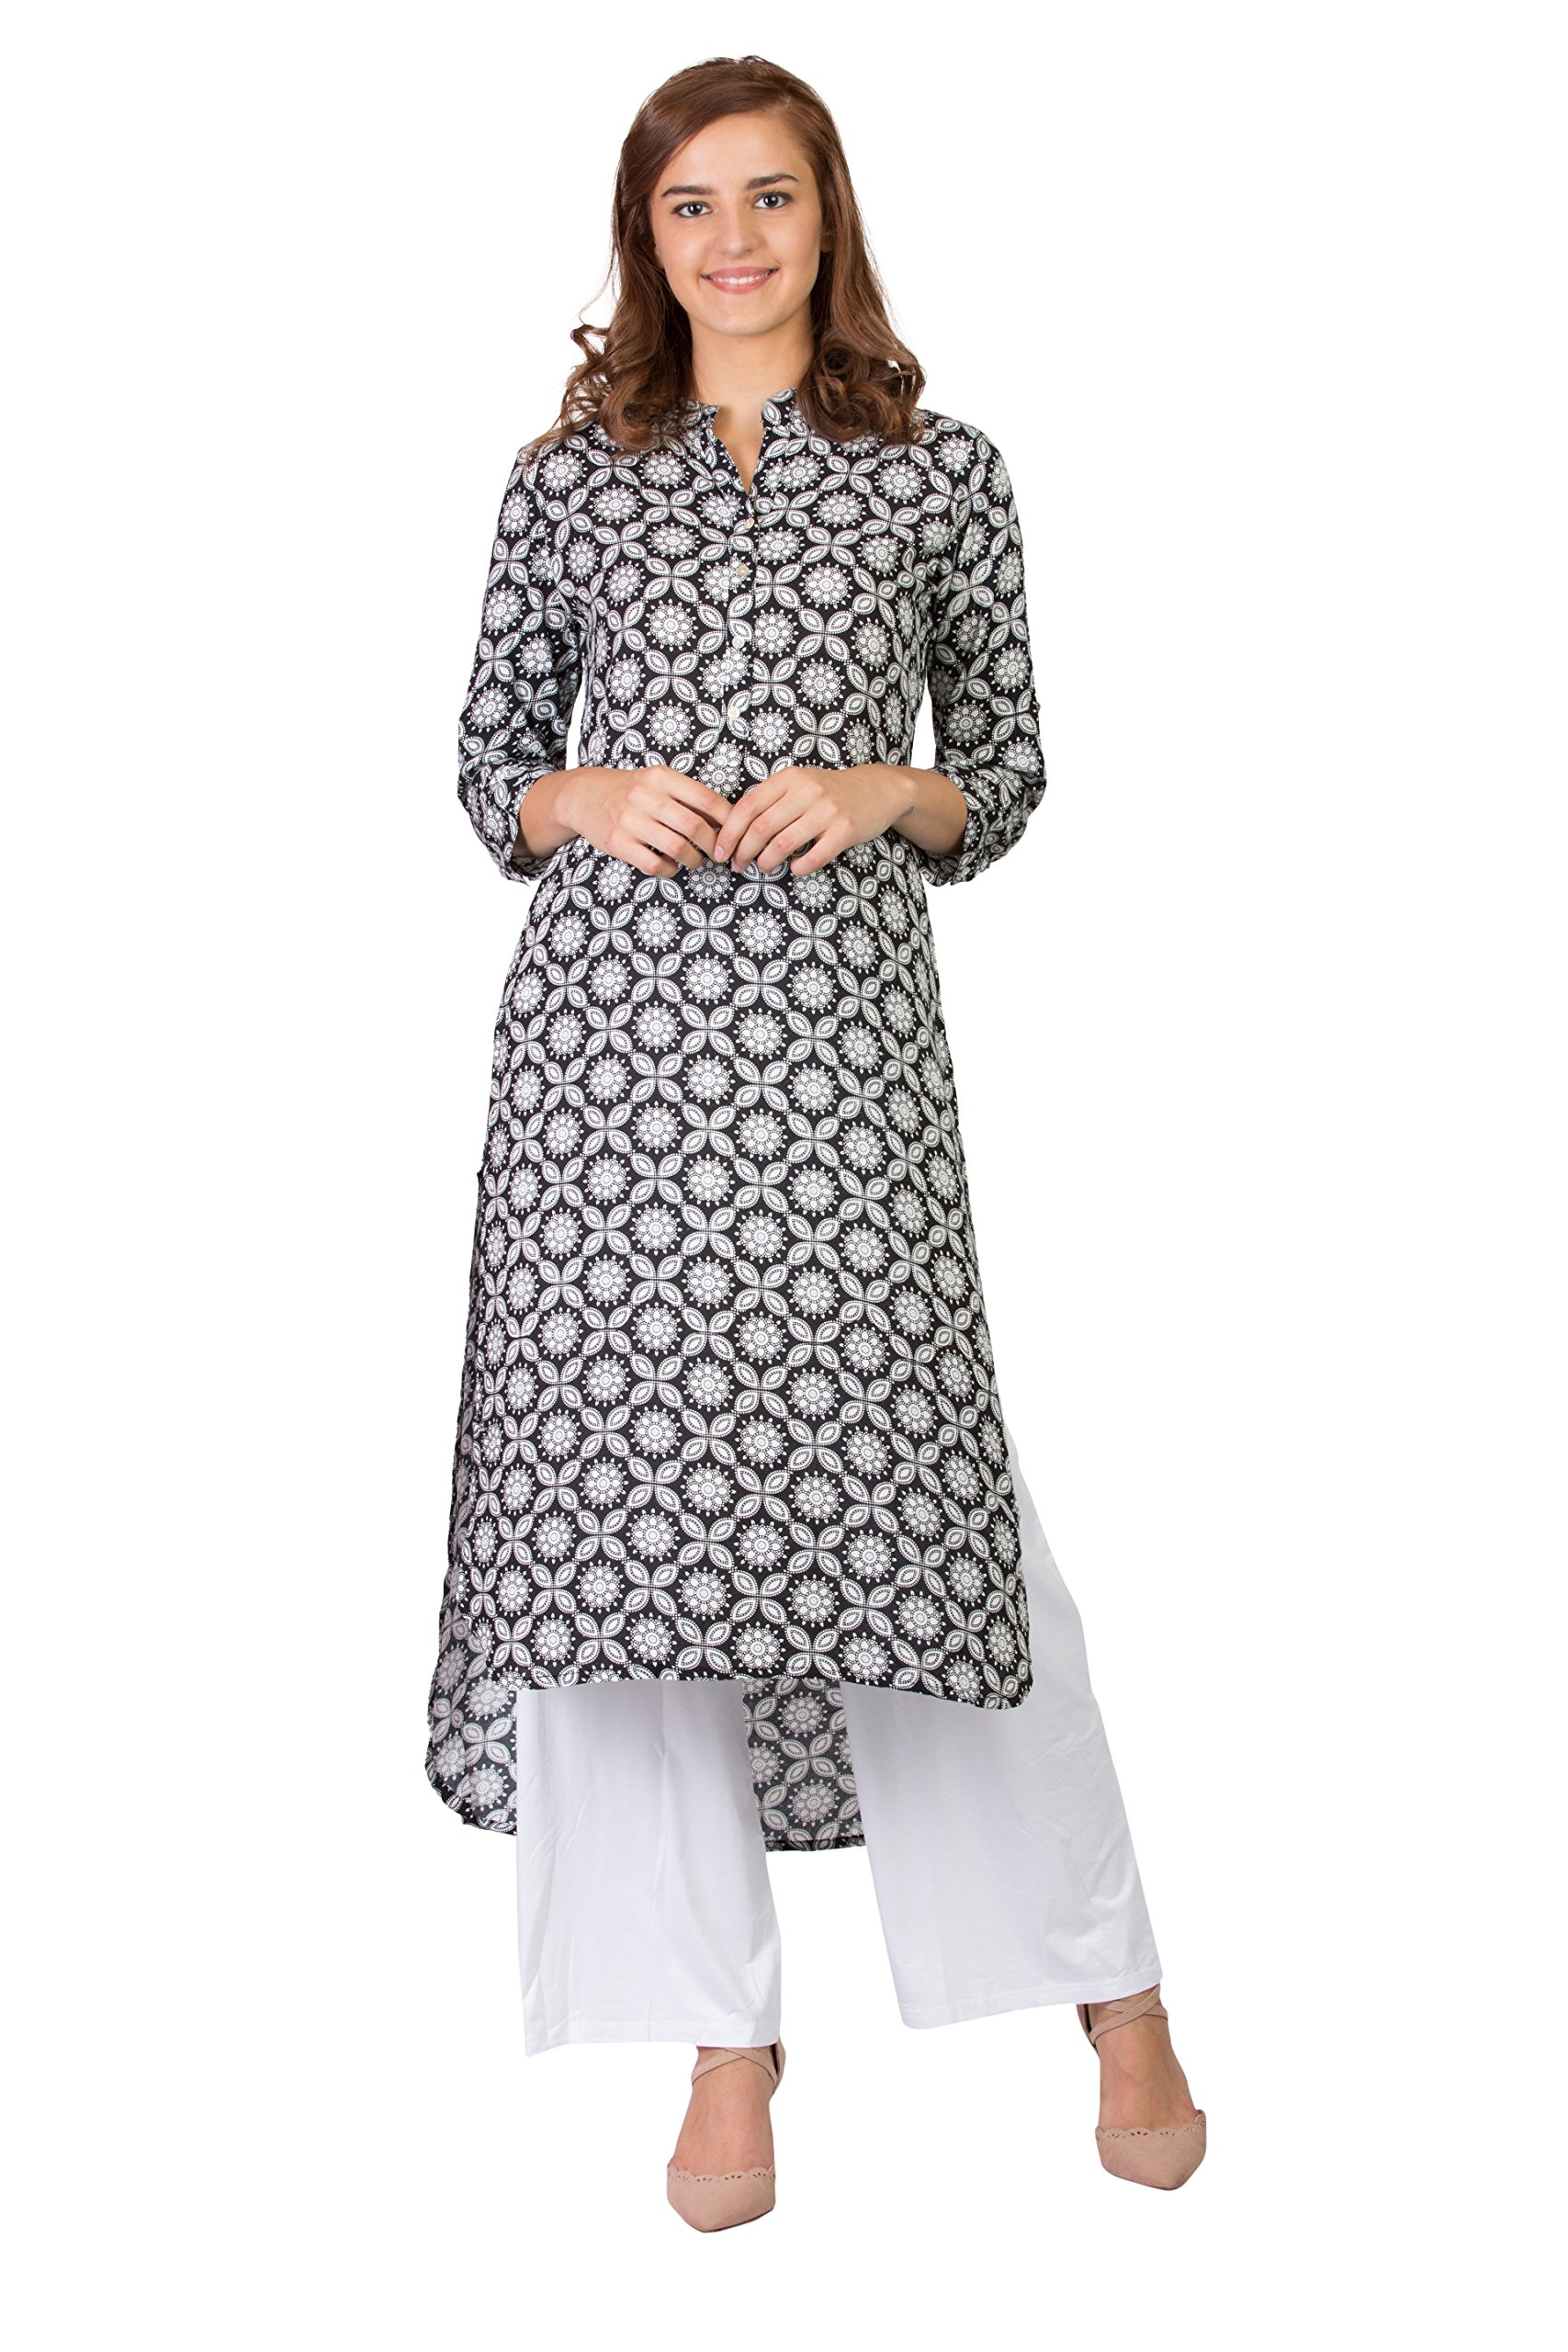 SABHYATA Women's Kurta 100% Pure Cotton Kurti for Women Tunic Casual Long Multicoloured Dress (Small, Black Floral)